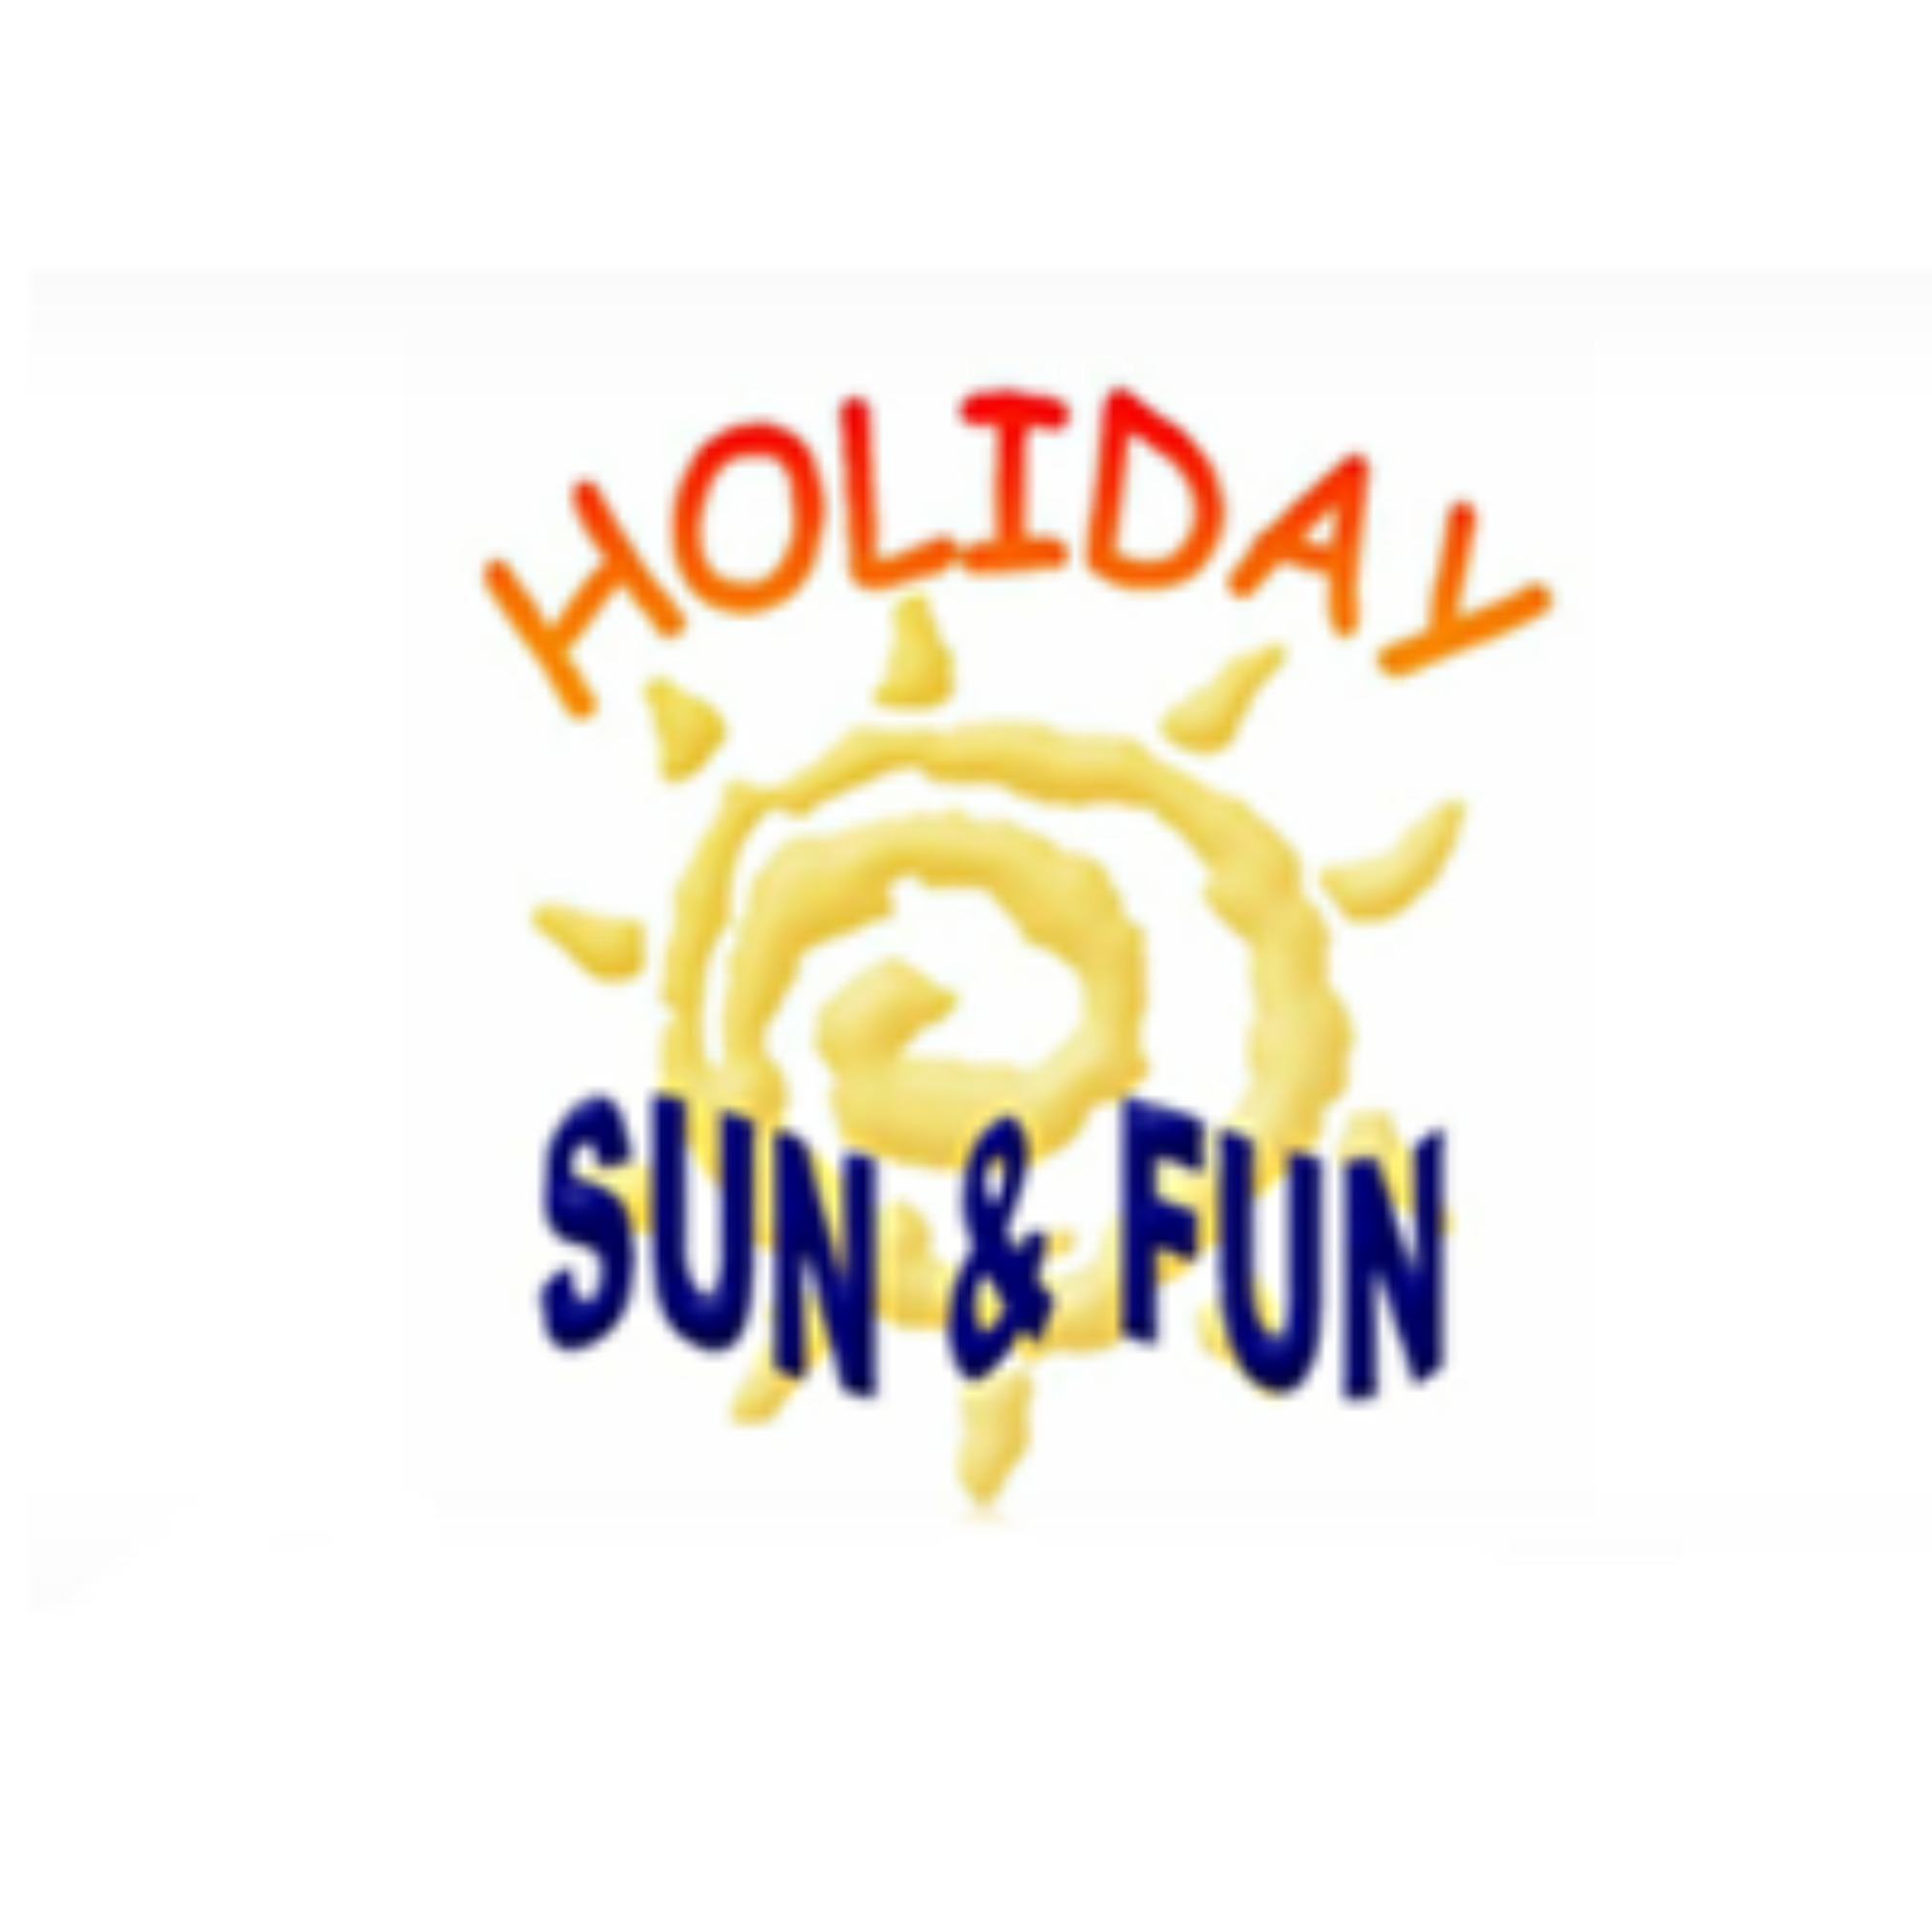 Sun & Fun Holiday S.L.